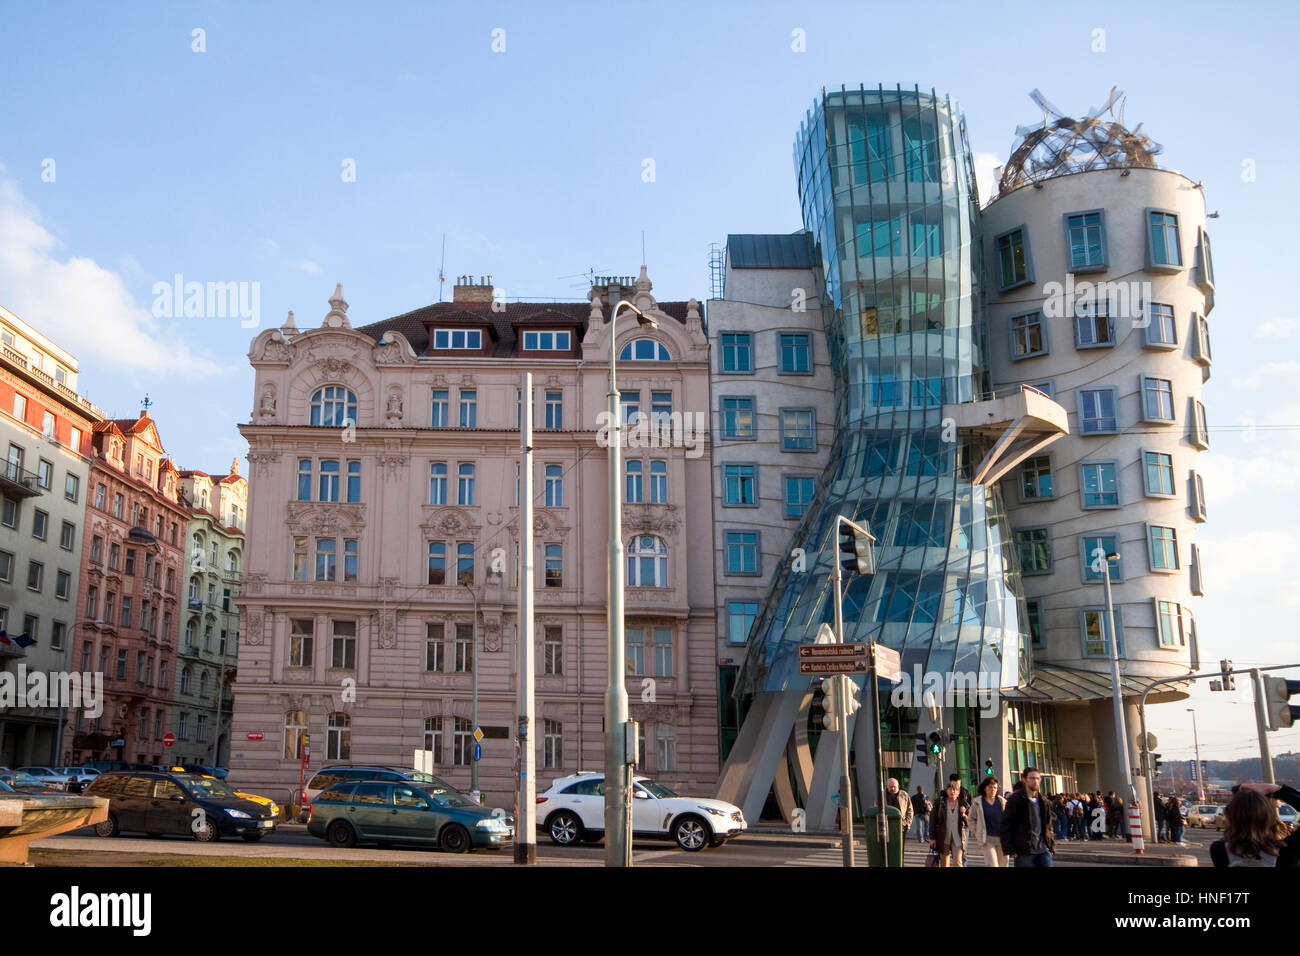 Czech Republic, Prague The Rasin Building AKA Ginger and Fred building, architect Frank Gehry - Stock Image